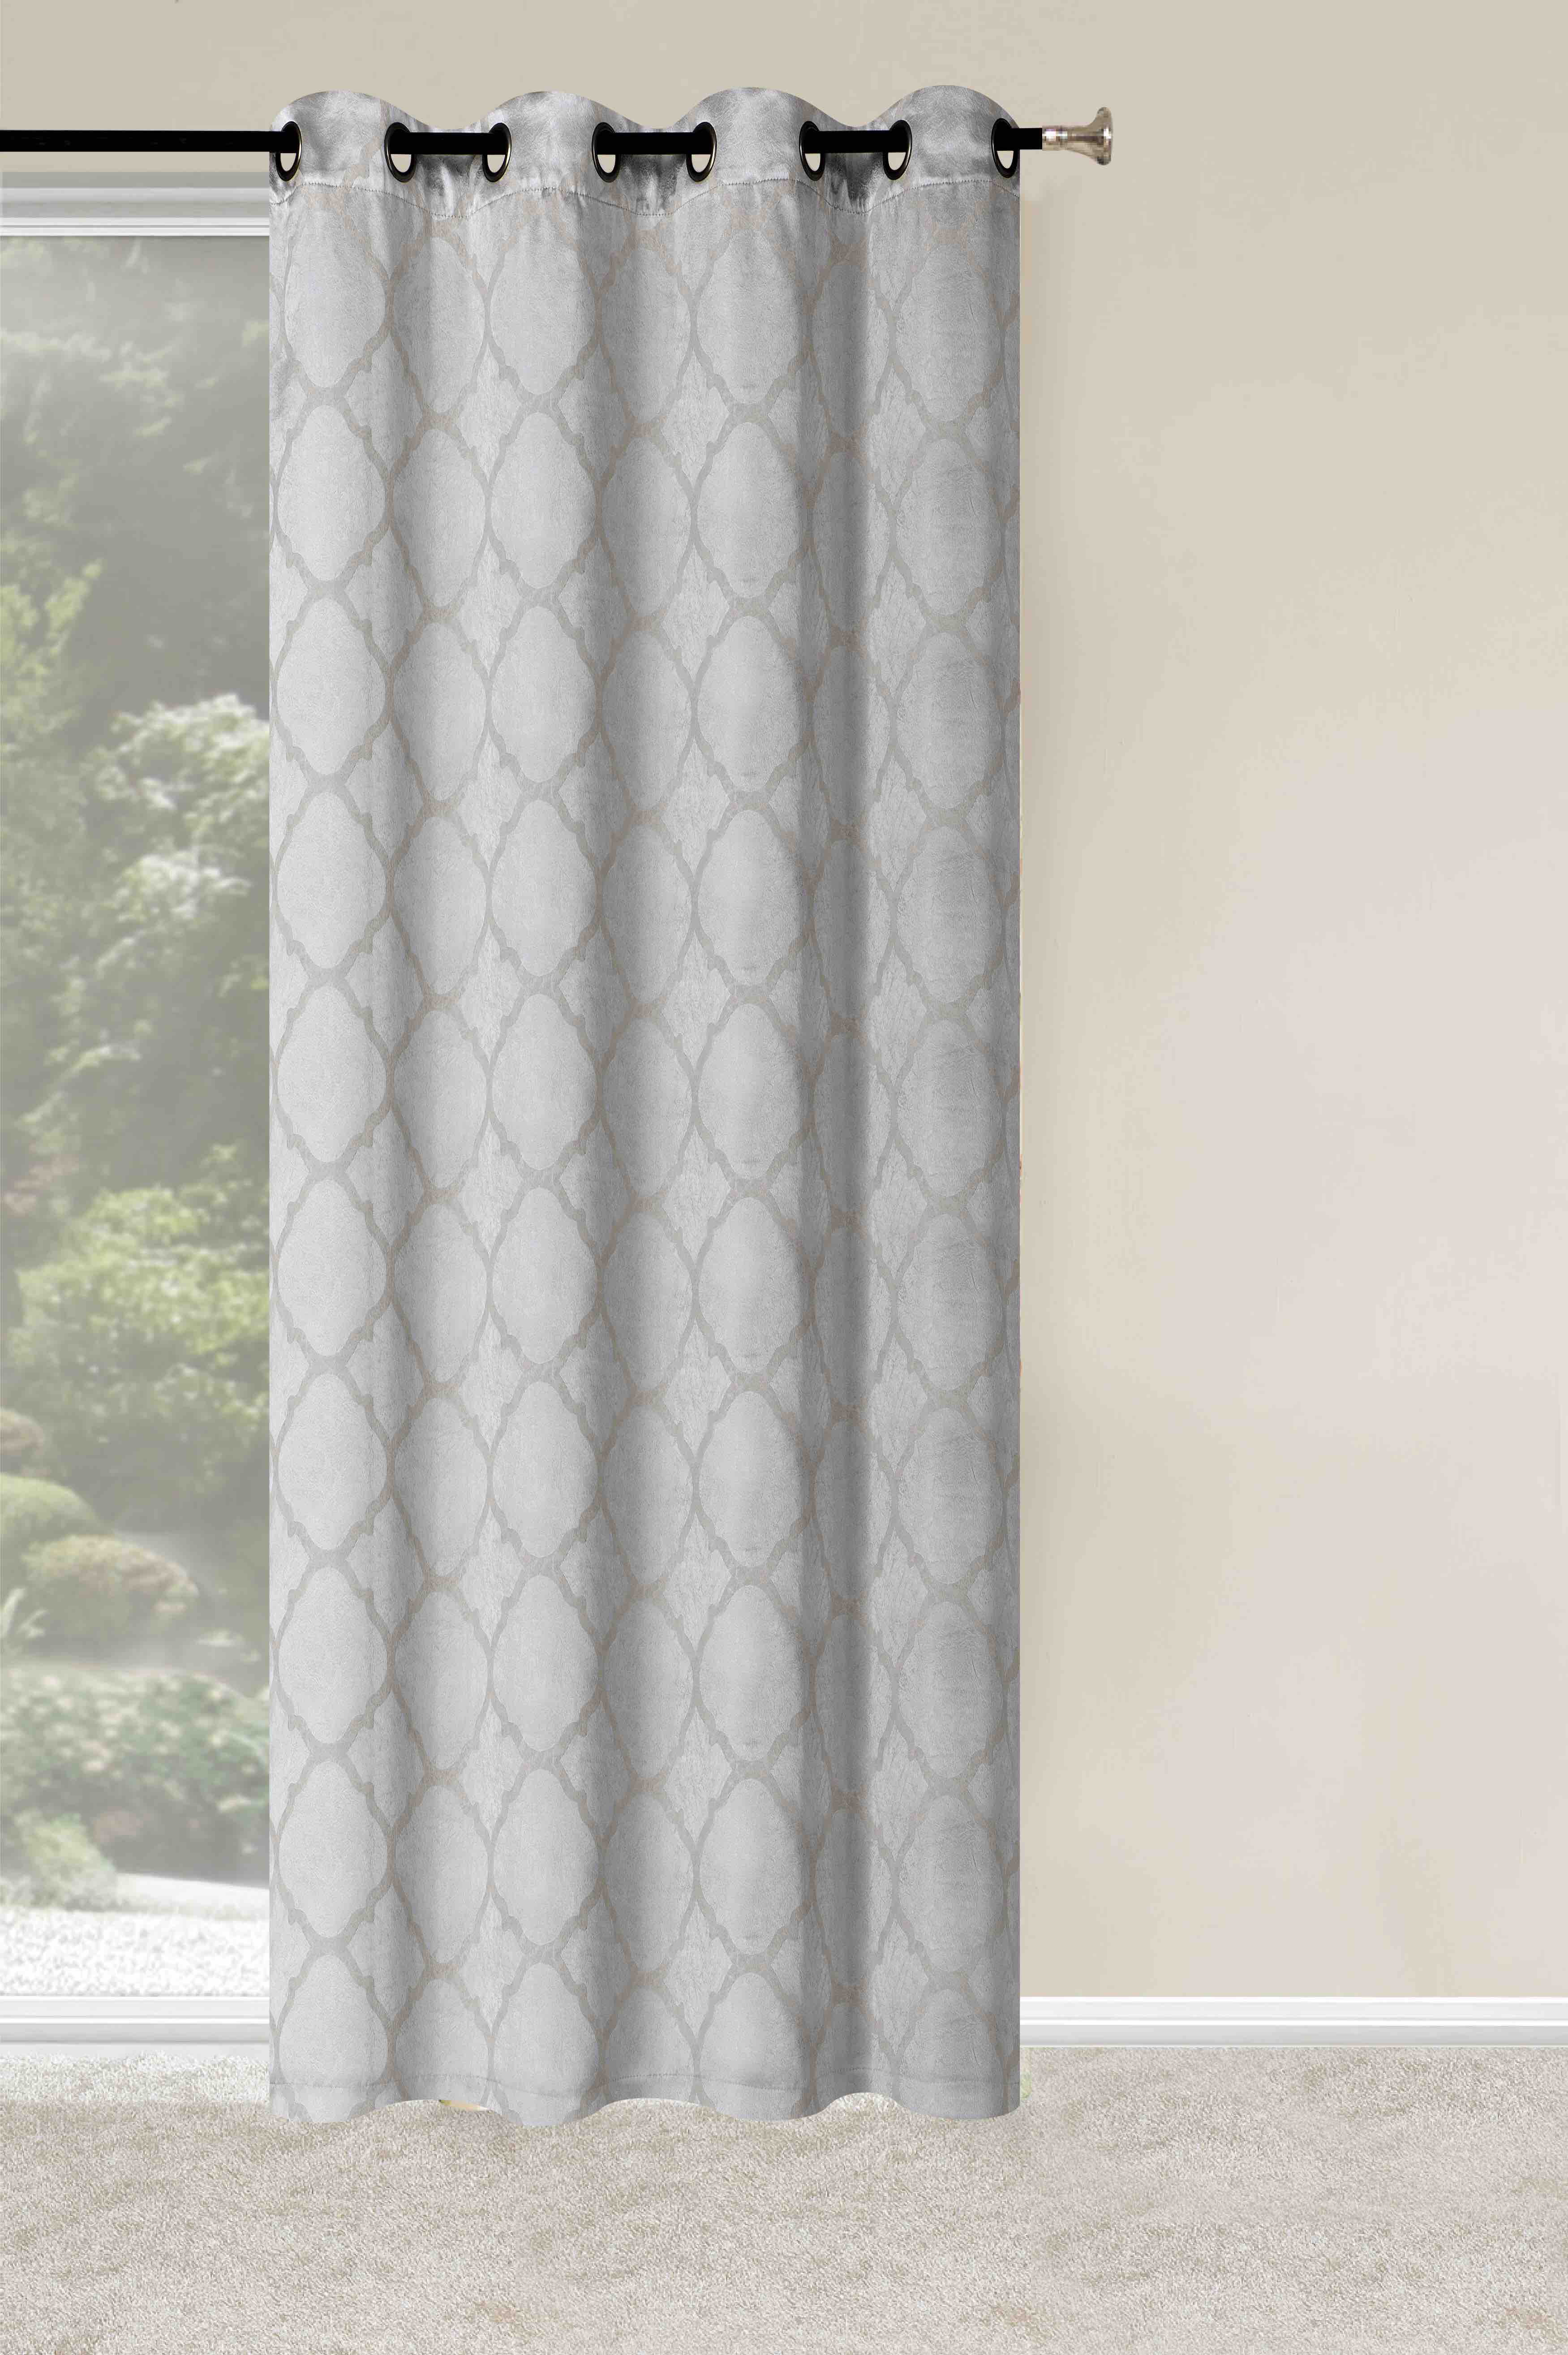 Arrowsmith Energy Saving Basic Metallic Lattice Geometric Blackout Thermal Grommet Curtain Panel Pair Within Moroccan Style Thermal Insulated Blackout Curtain Panel Pairs (View 17 of 20)